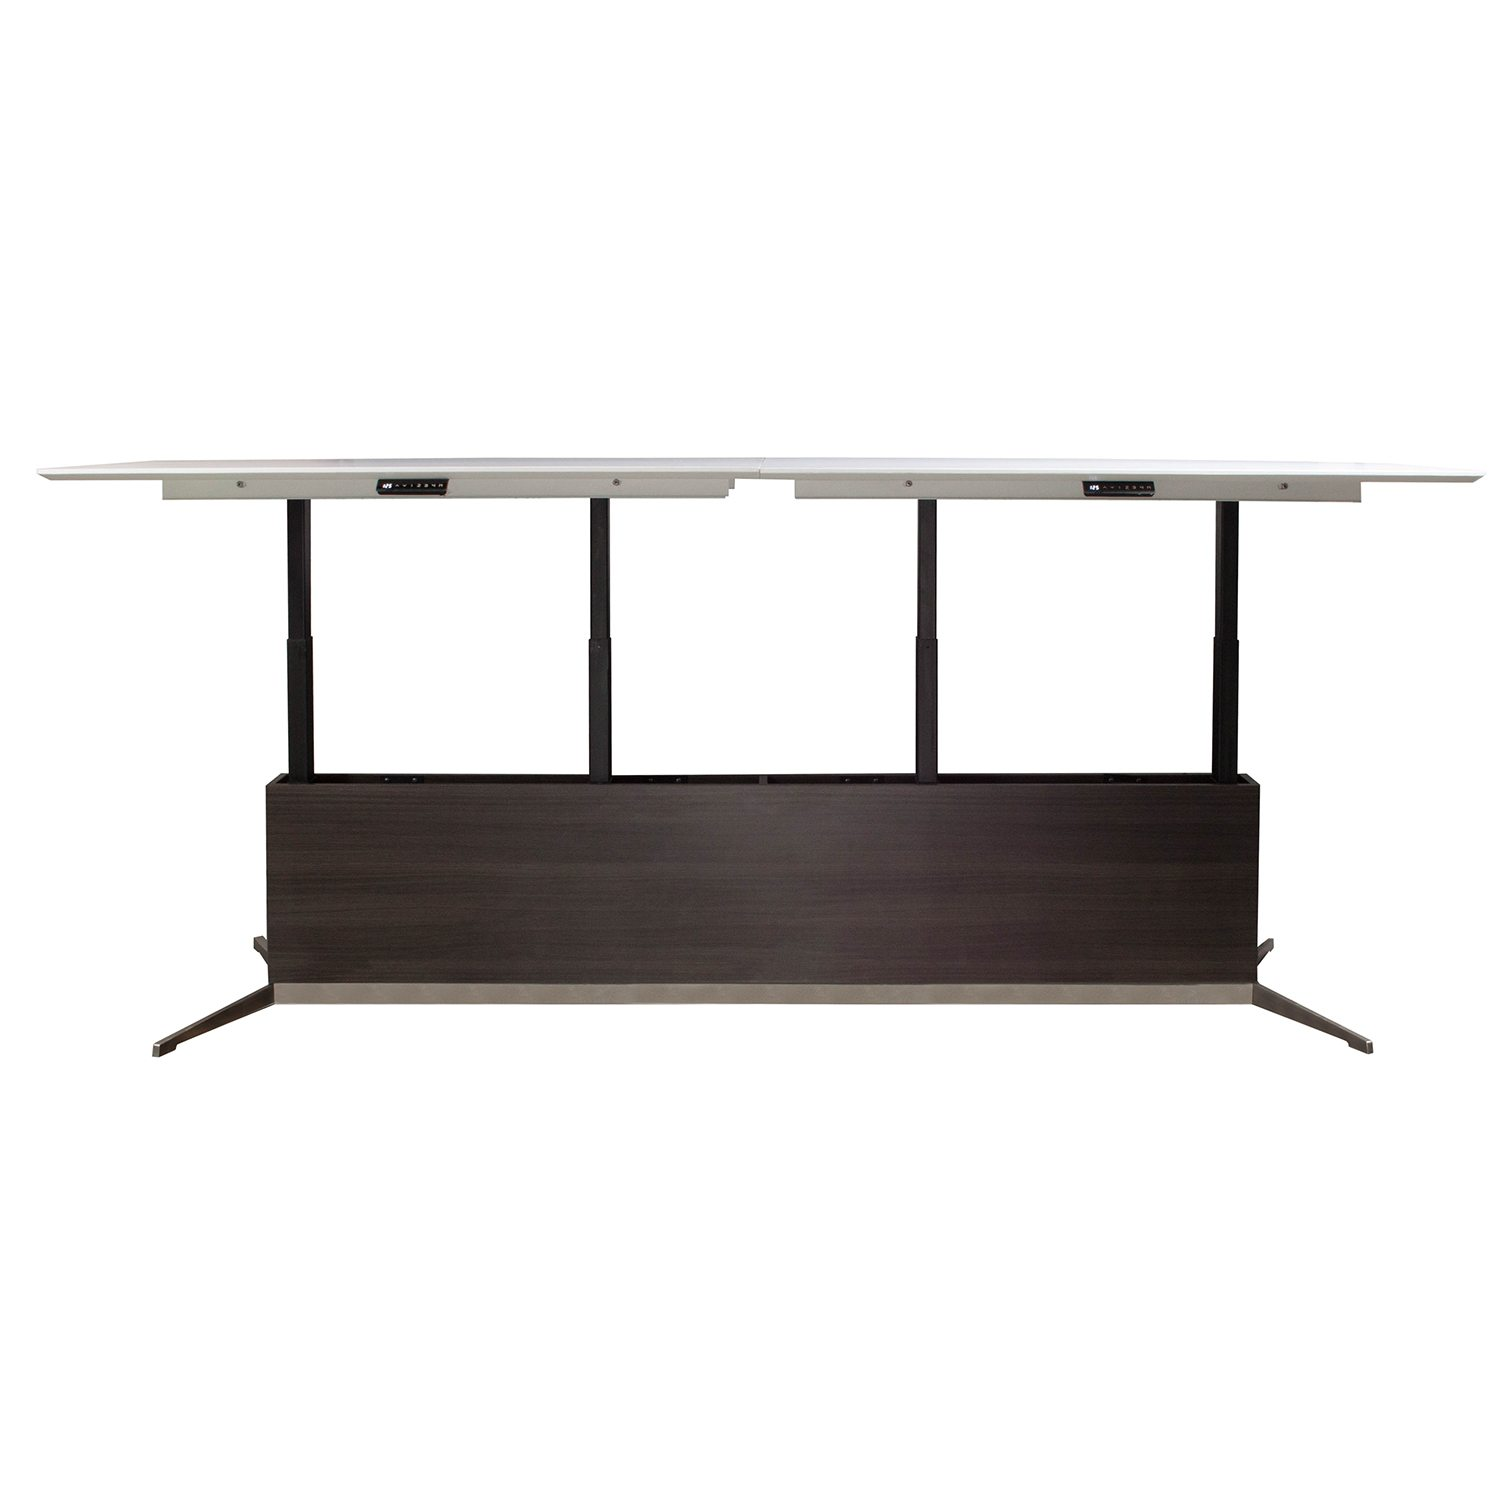 stoneline white conference tangent frosted glass modern boardroom with boat integrated and shape tables designs product table wiring